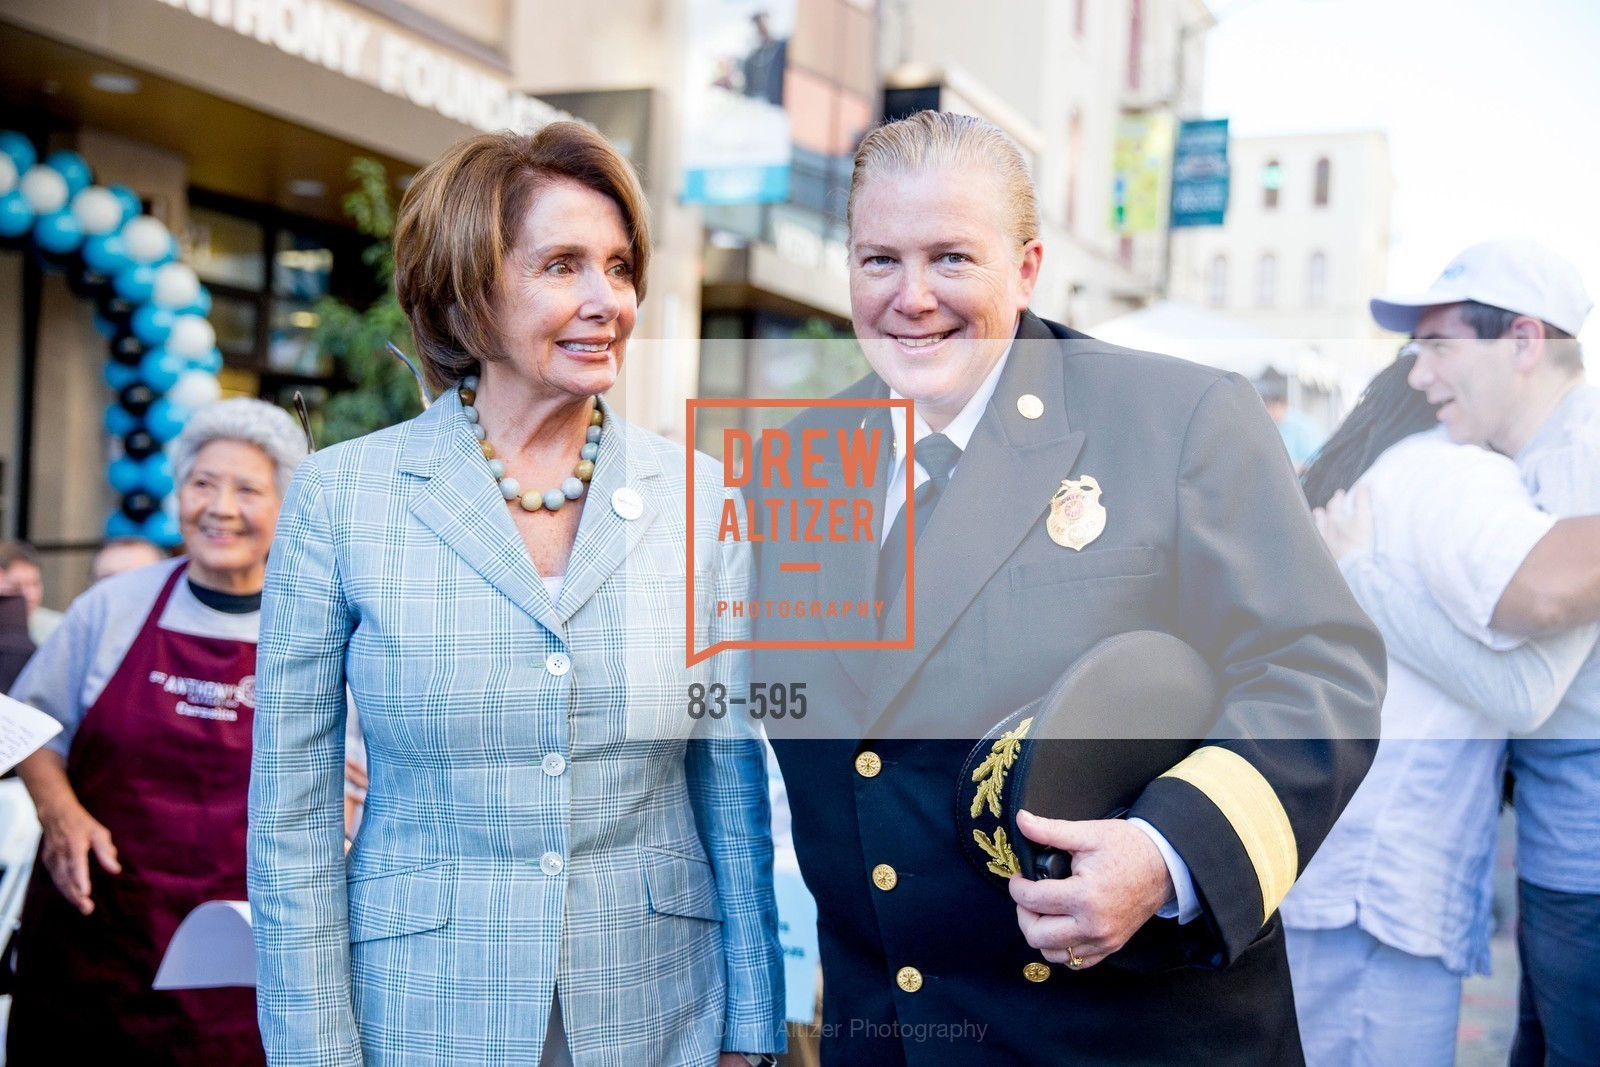 The Honorable Nancy Pelosi, Joanne Hayes-White, ST. ANTHONY'S Dining Room Ribbon Cutting Ceremony, US, October 4th, 2014,Drew Altizer, Drew Altizer Photography, full-service agency, private events, San Francisco photographer, photographer california